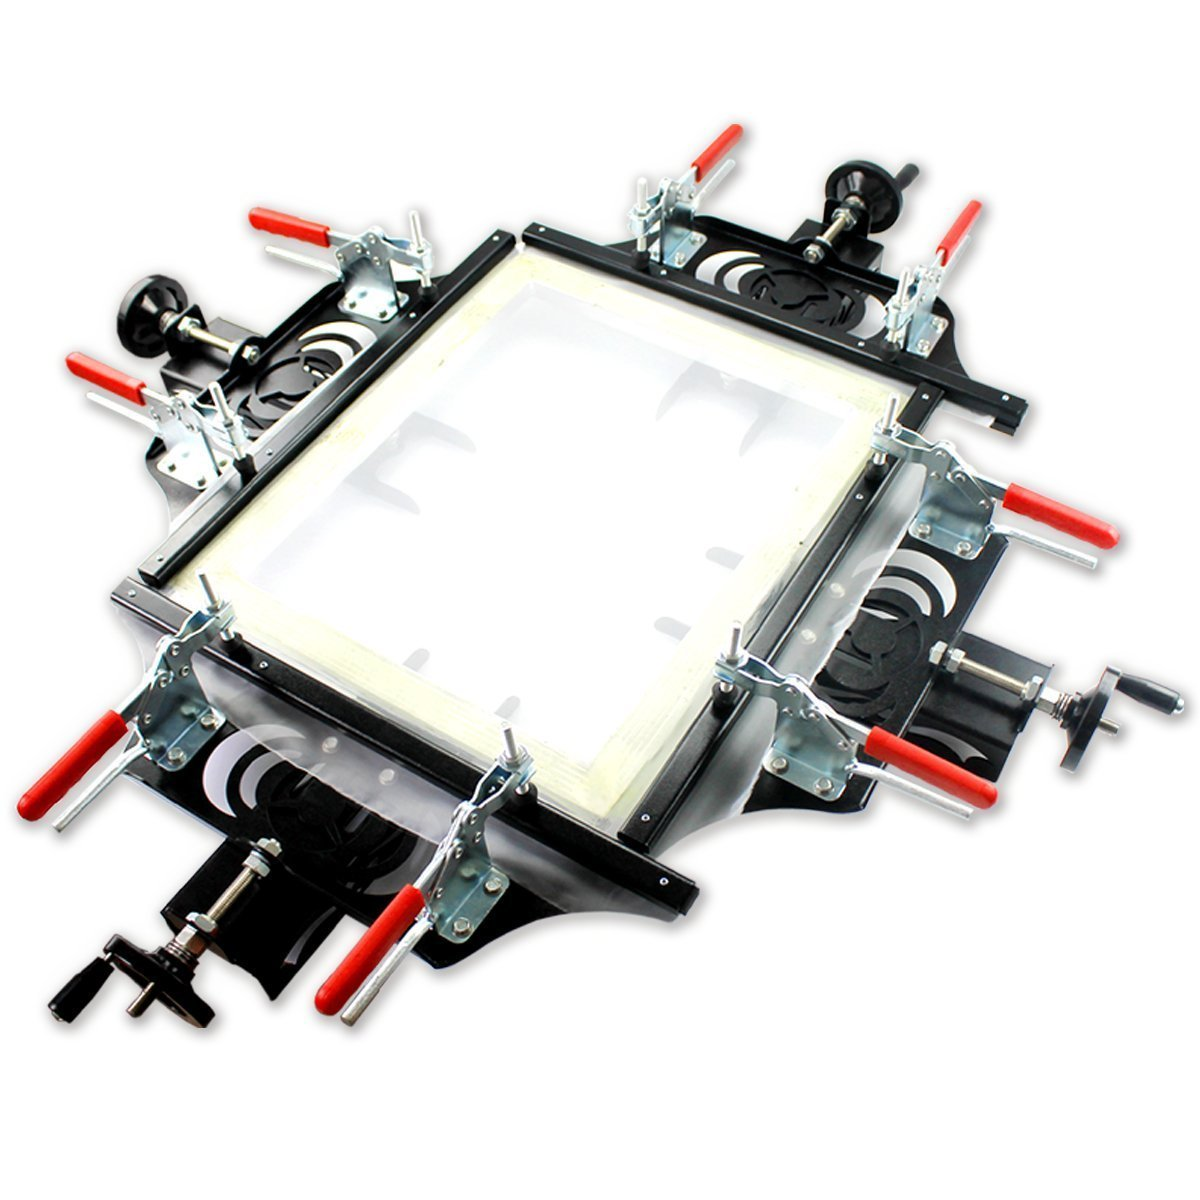 Fast Clip Manual Stretcher Screen Printing Plate Making Tool for Silk Screen Printing 60cm×60cm(24inches×24inches)